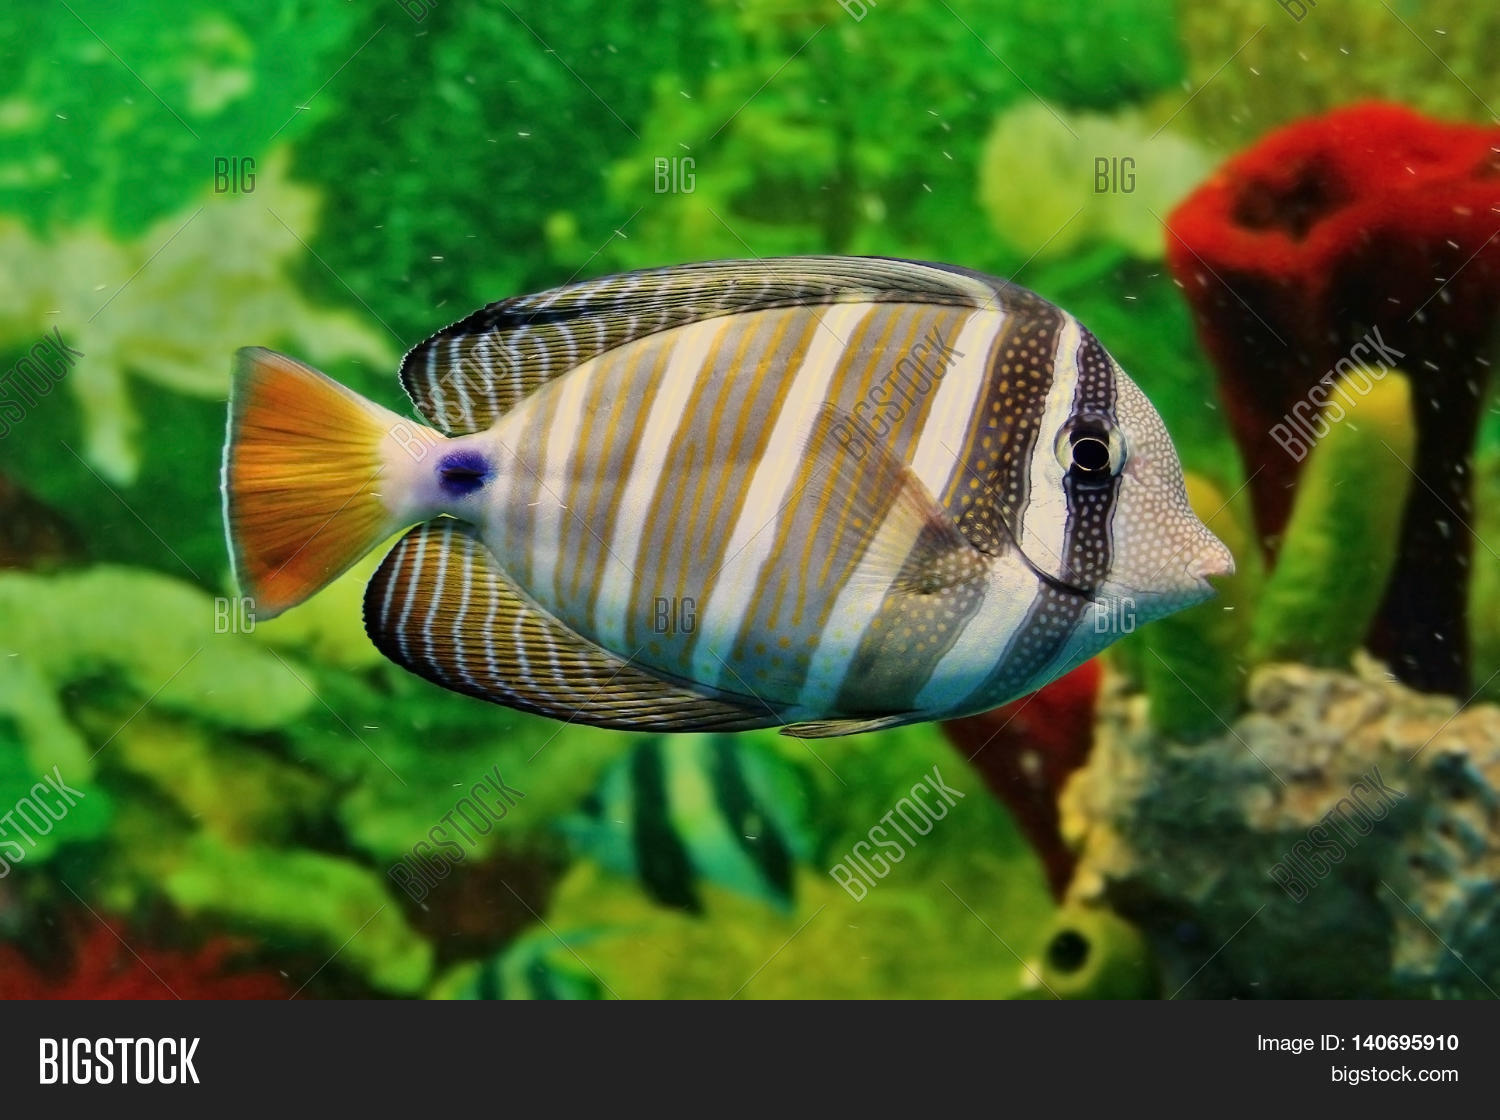 Fish for vertical aquarium - Striped Marine Fish With Grey And White Vertical Lines Yellow Tail And Blue Point At Base